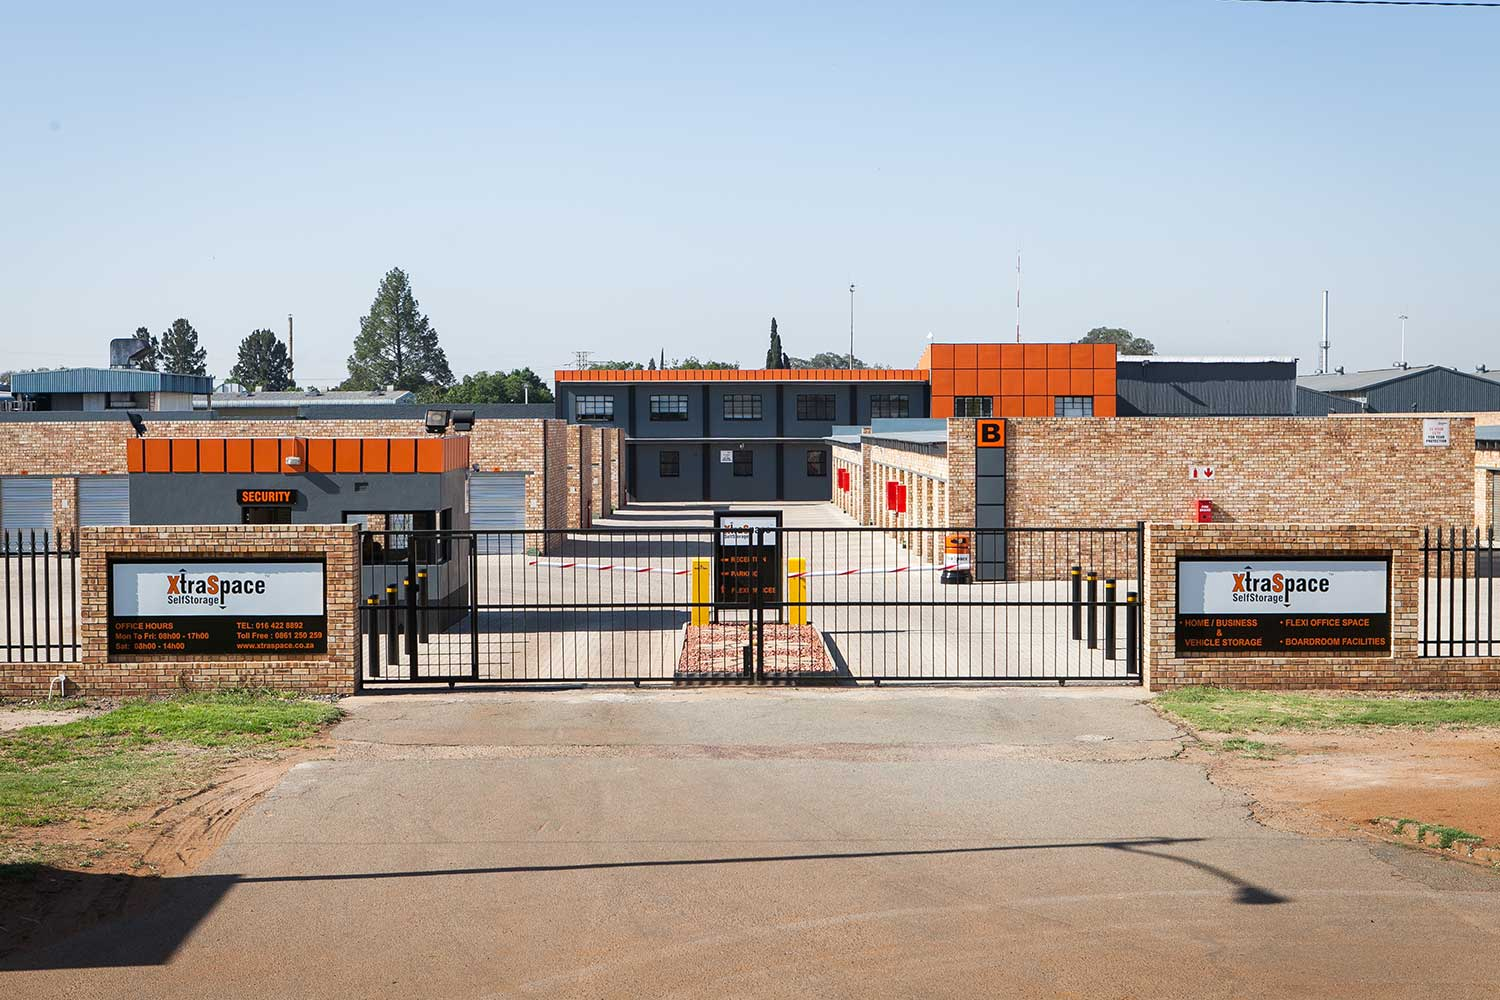 Street view of the XtraSpace Vereeniging self storage faciltity